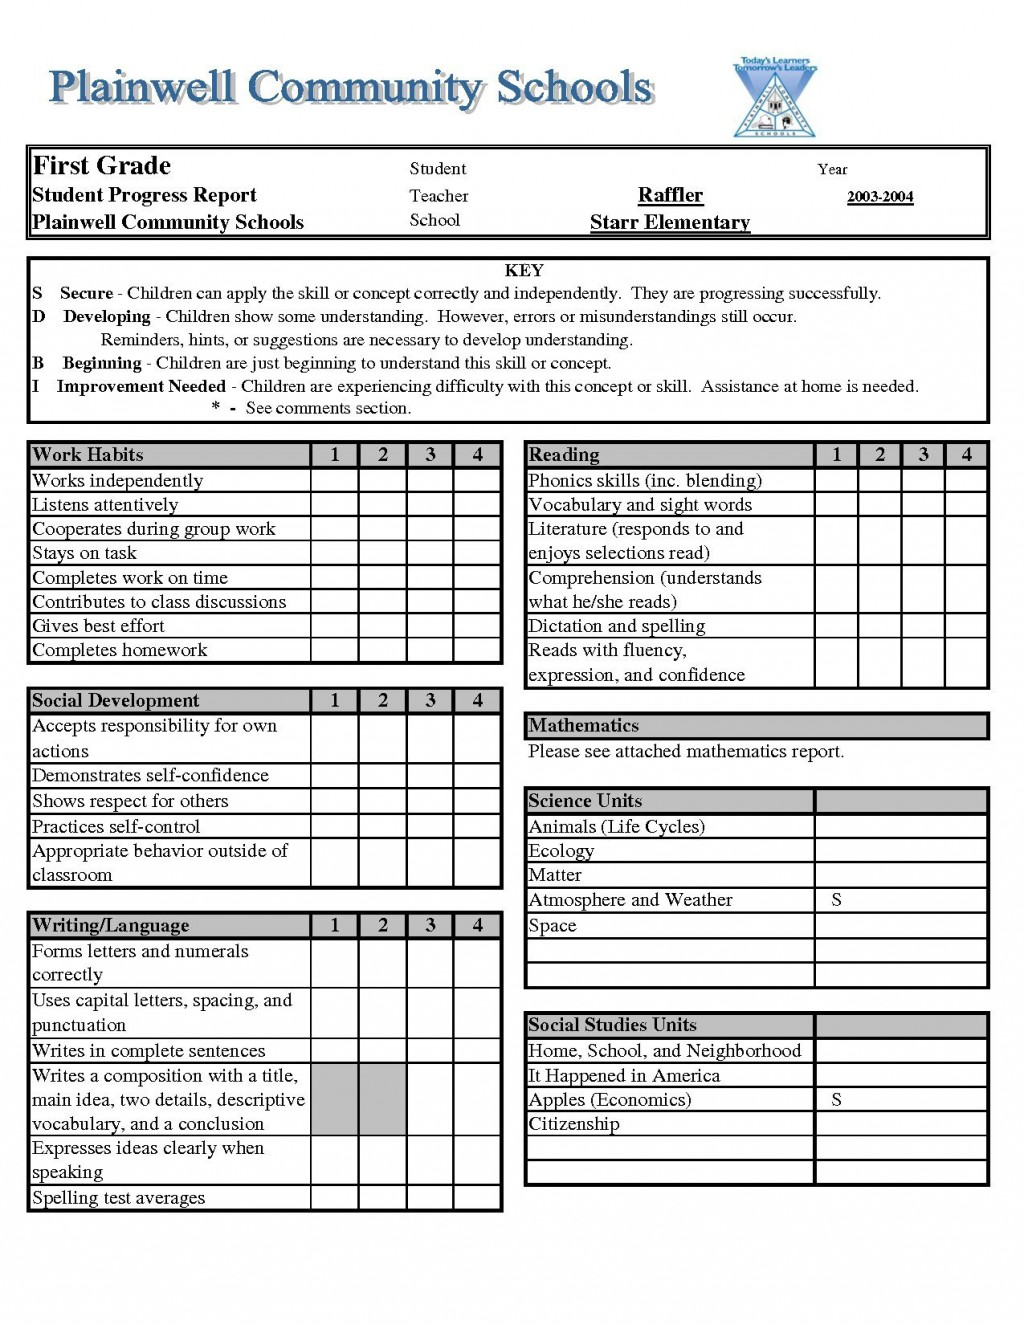 002 Unbelievable Fake Report Card Template Inspiration  College High SchoolLarge